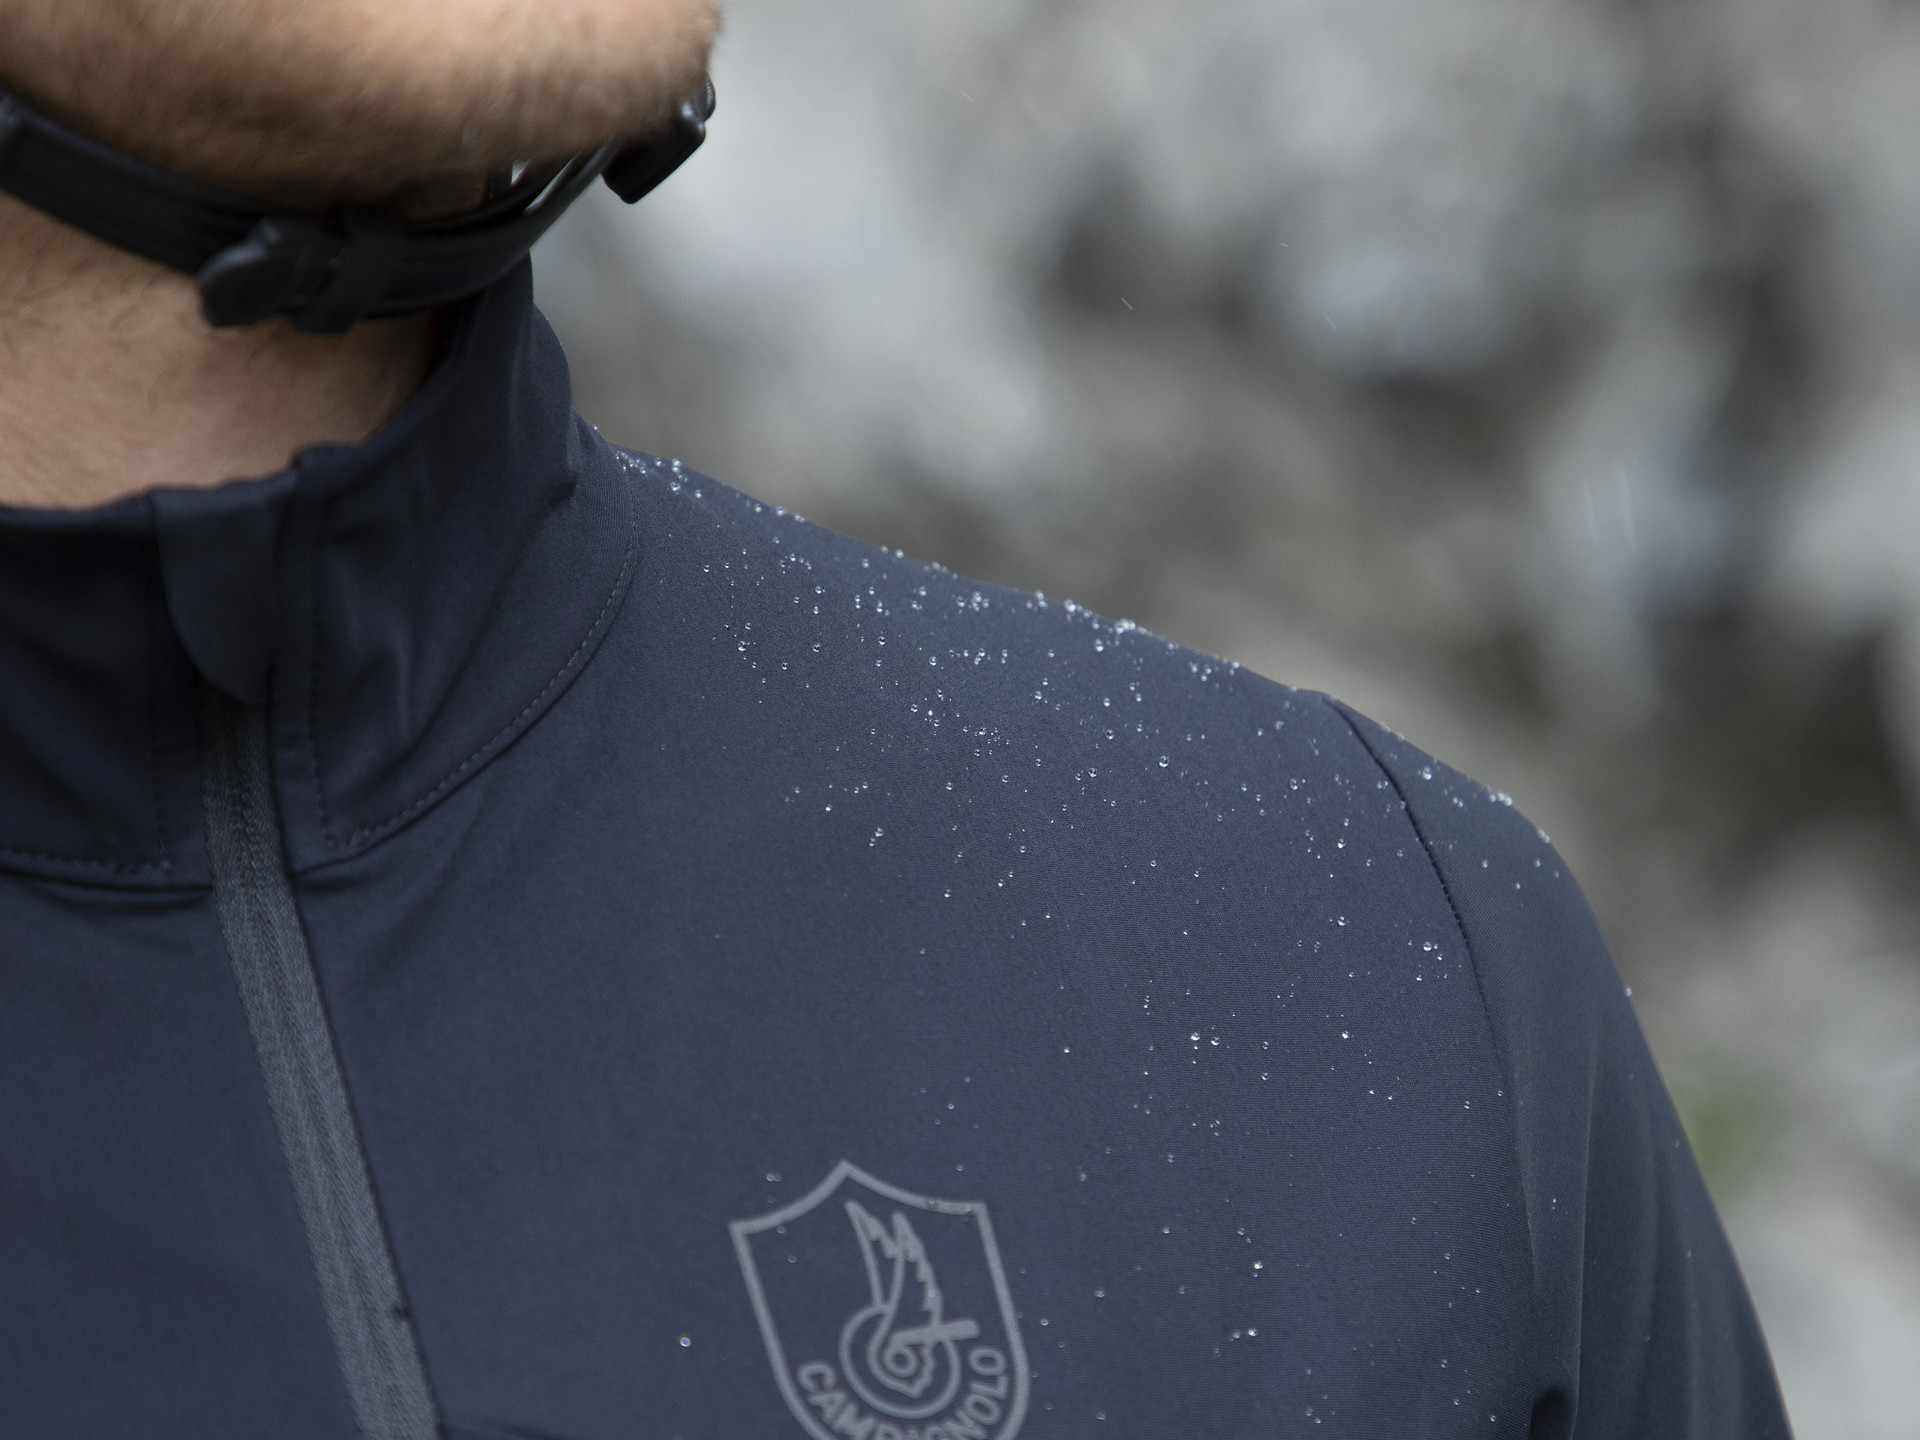 C-TECH WINTER JACKET | Campagnolo Cycling Jackets and Gilet